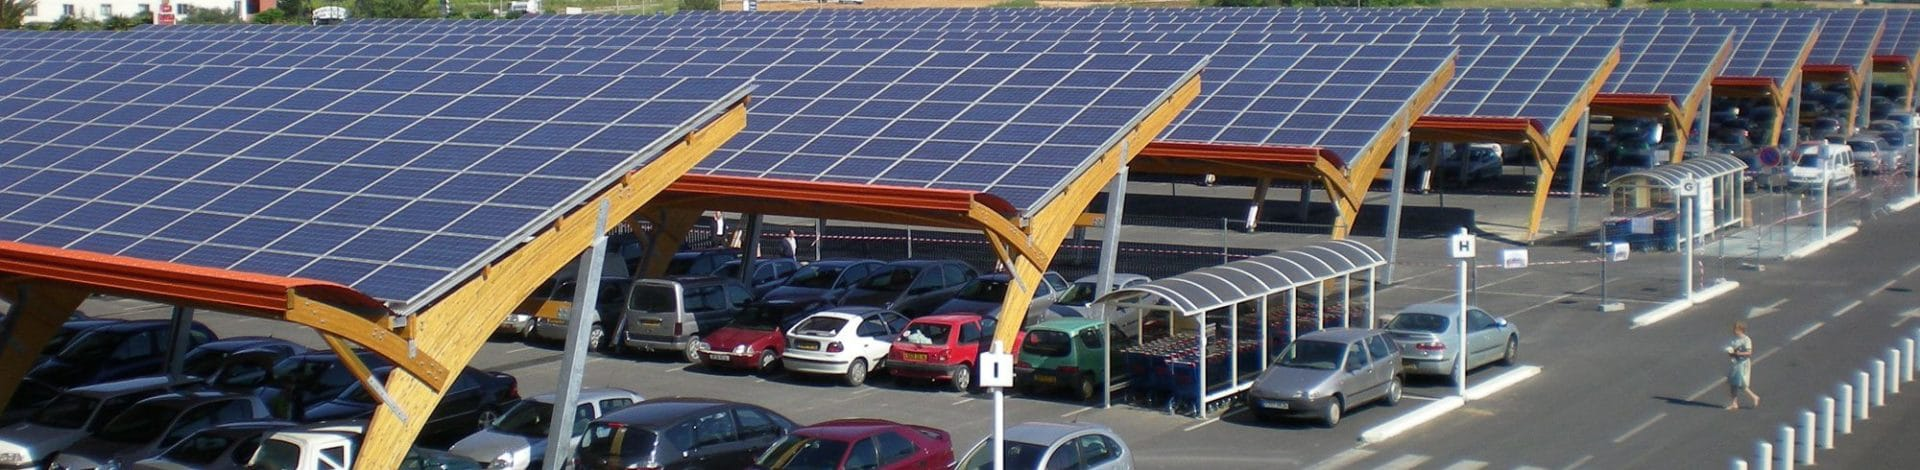 Photovoltaic station on parking shades